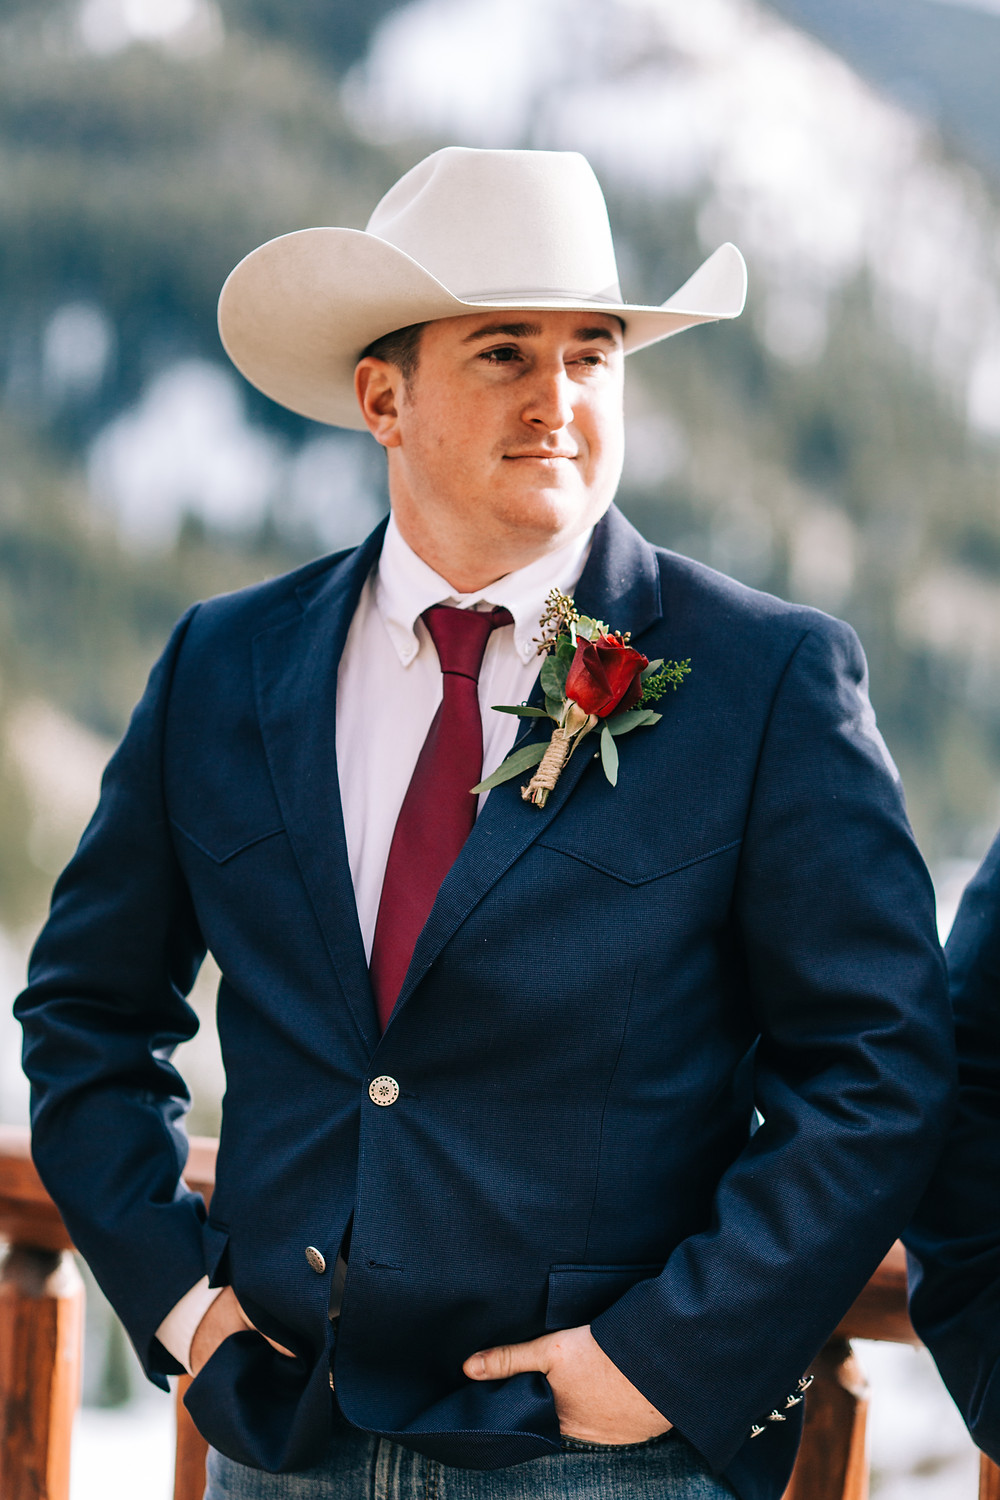 The Lodge at Breckenridge Wedding; Groom